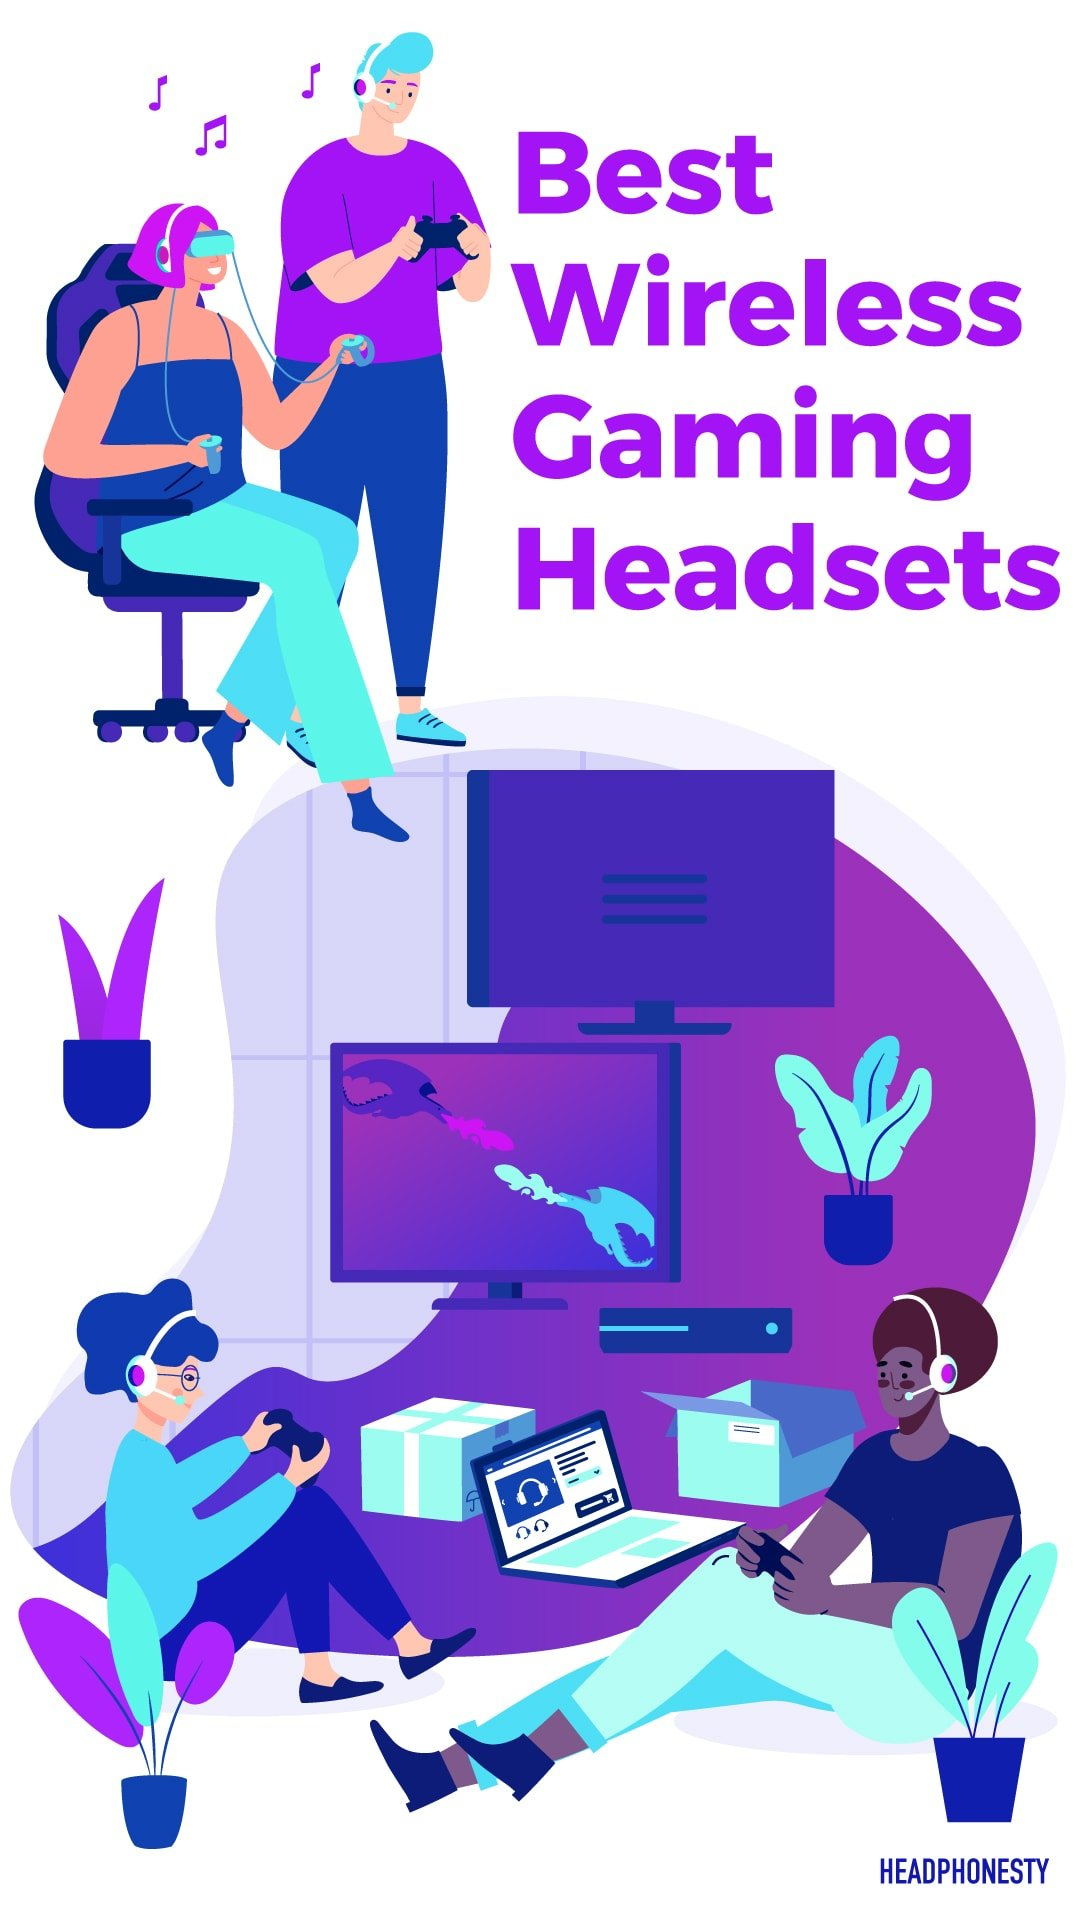 Best Wireless Gaming Headsets Image for Pinterest